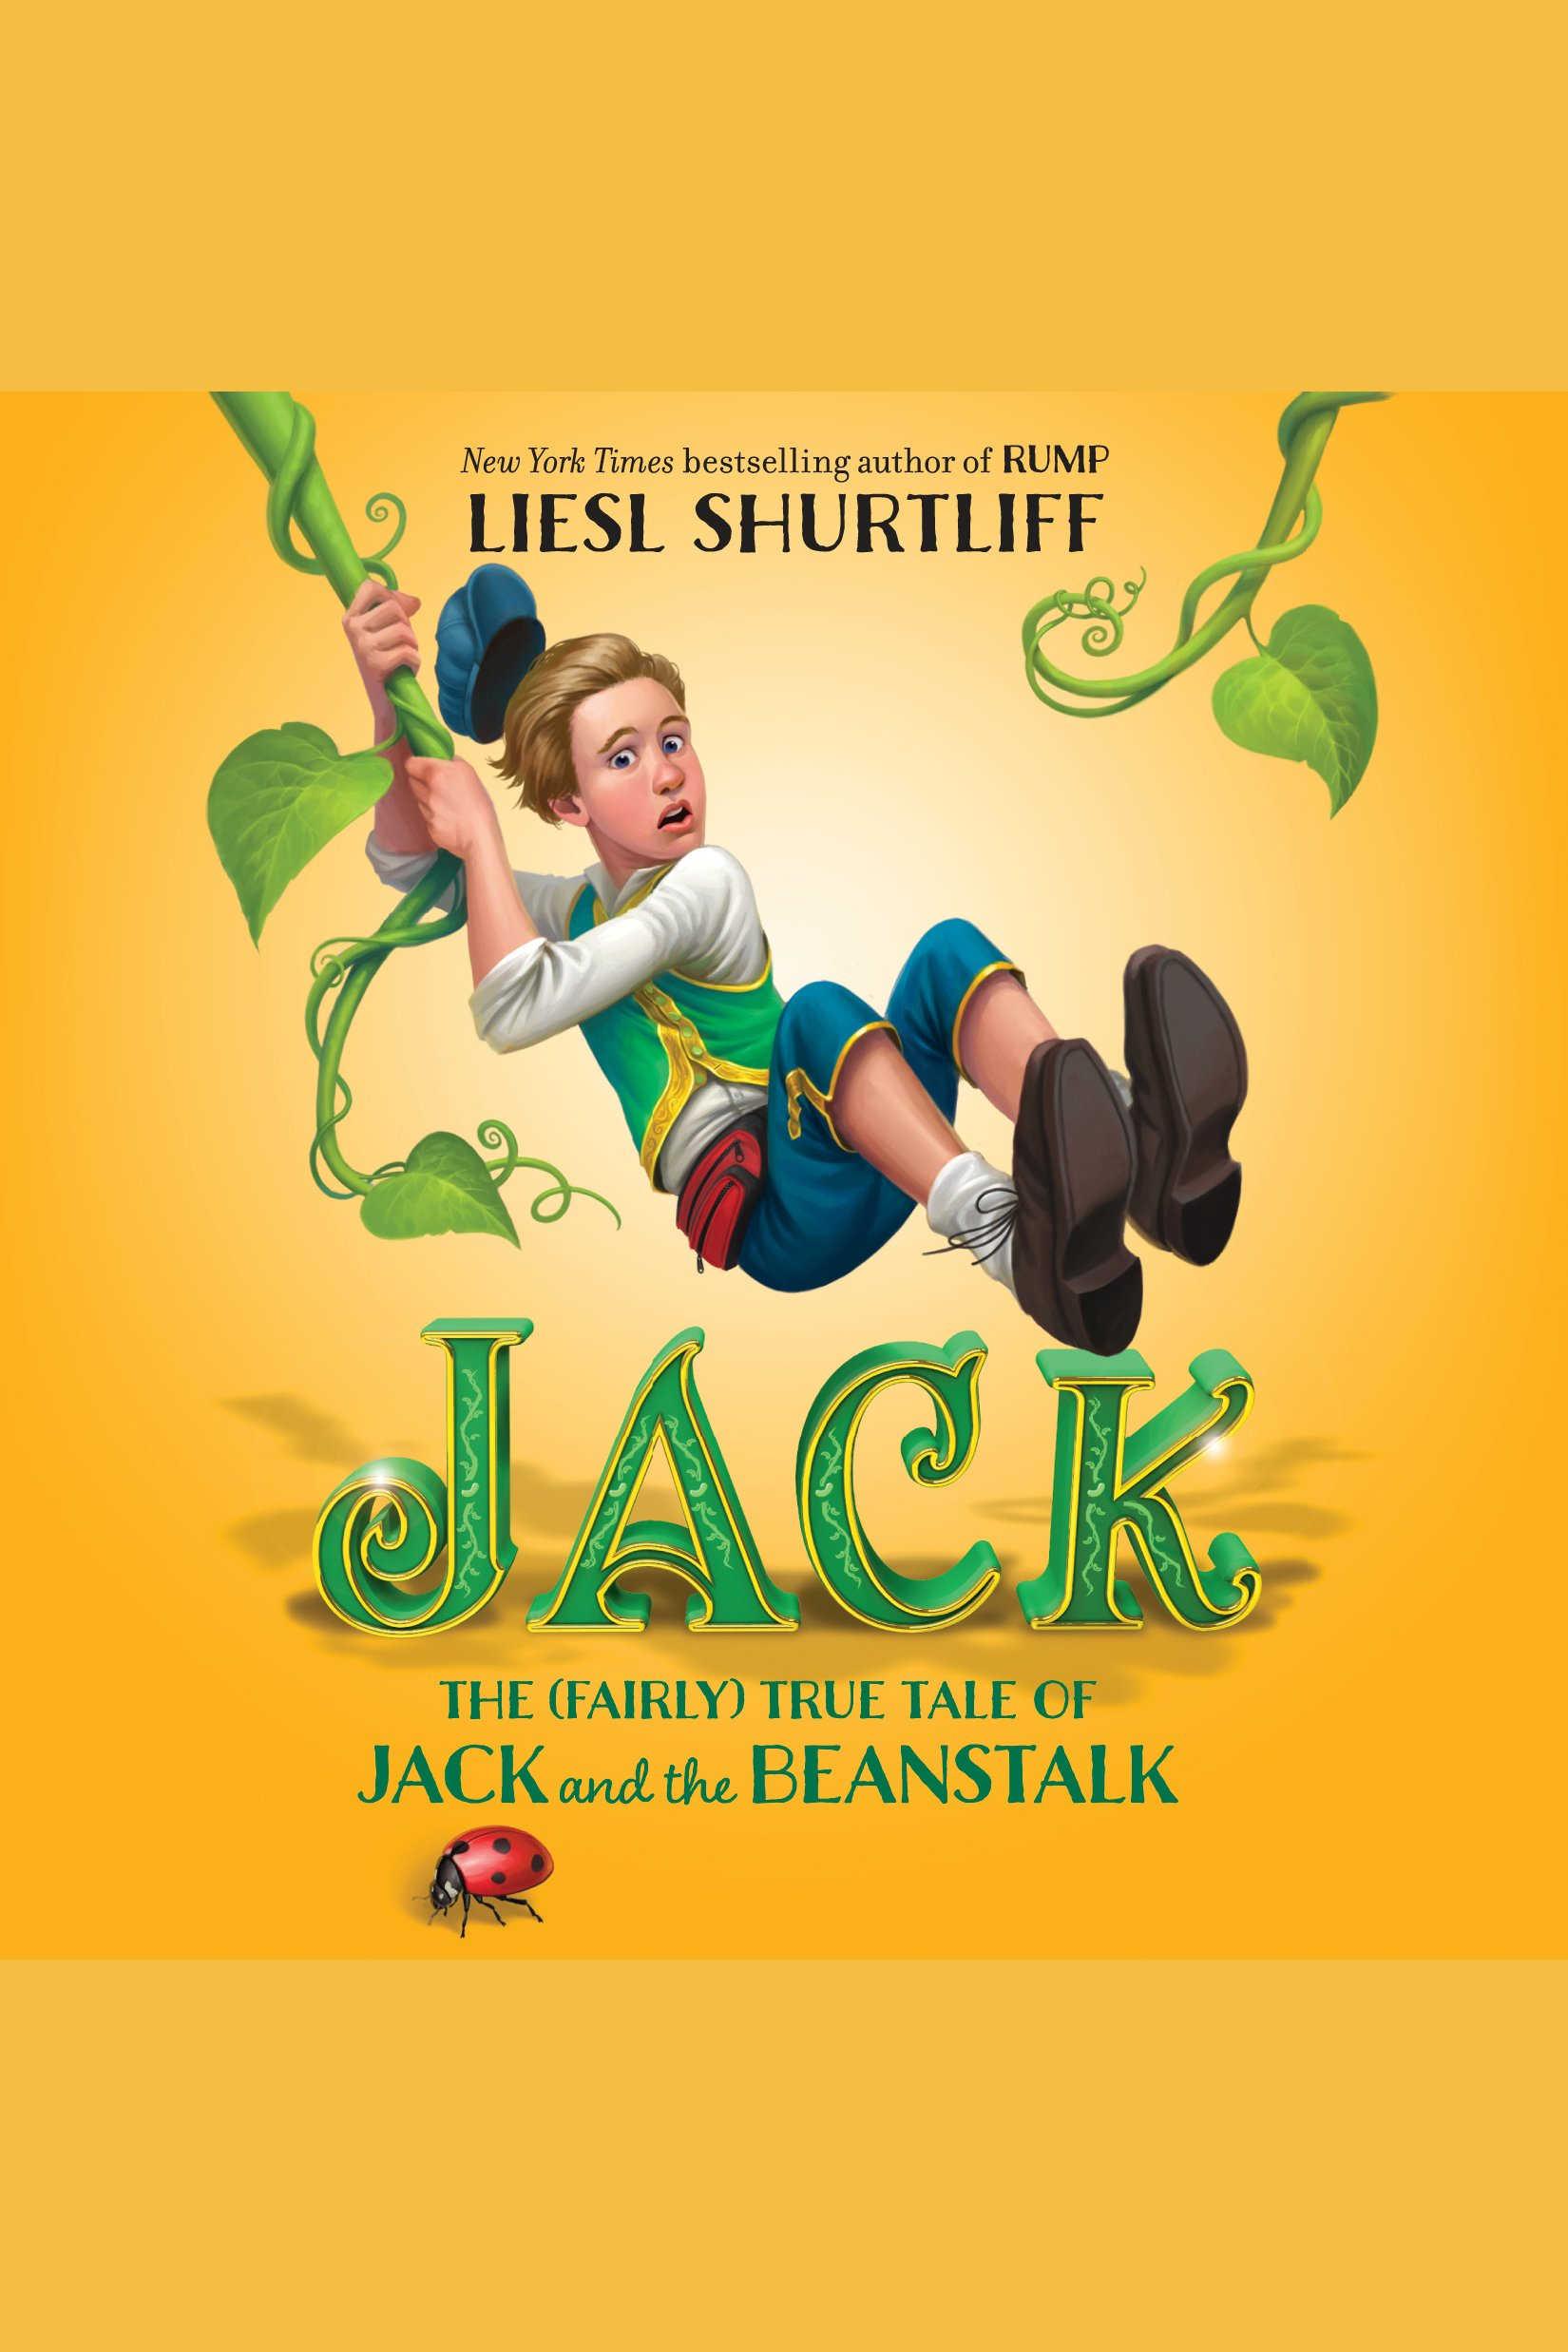 Jack the true story of Jack & the beanstalk cover image